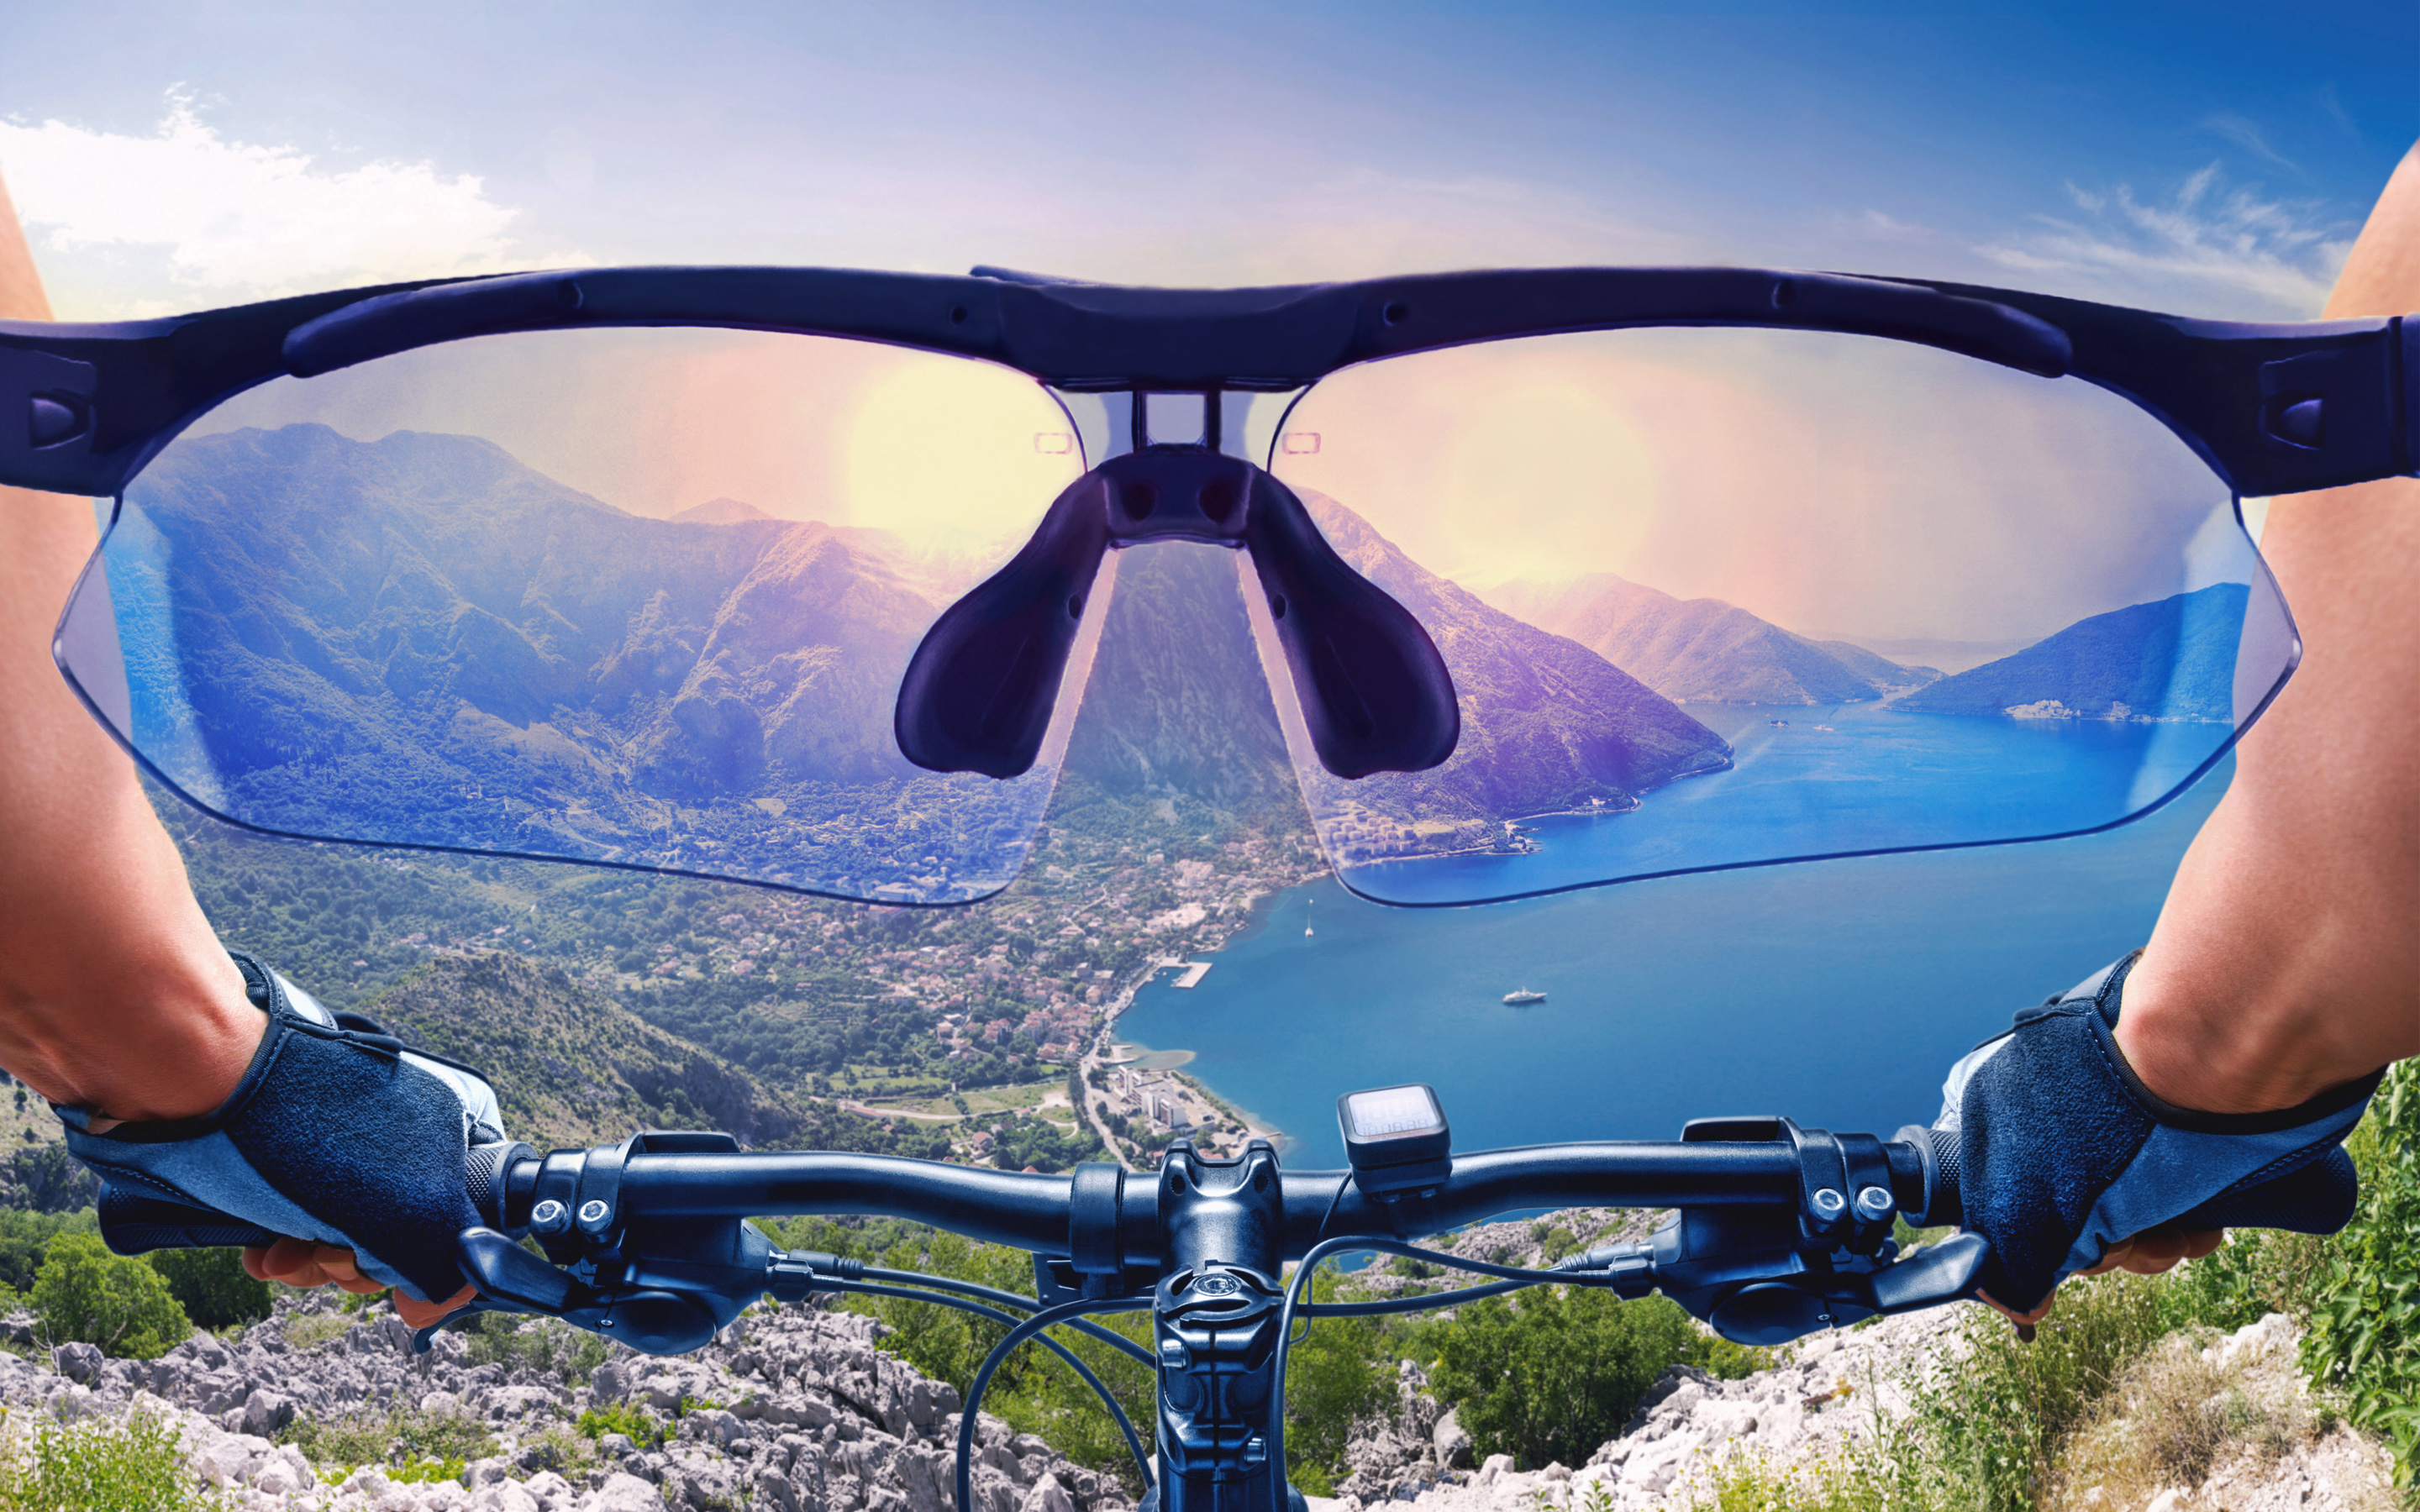 Bicycle%20Mountain%20View3769314615